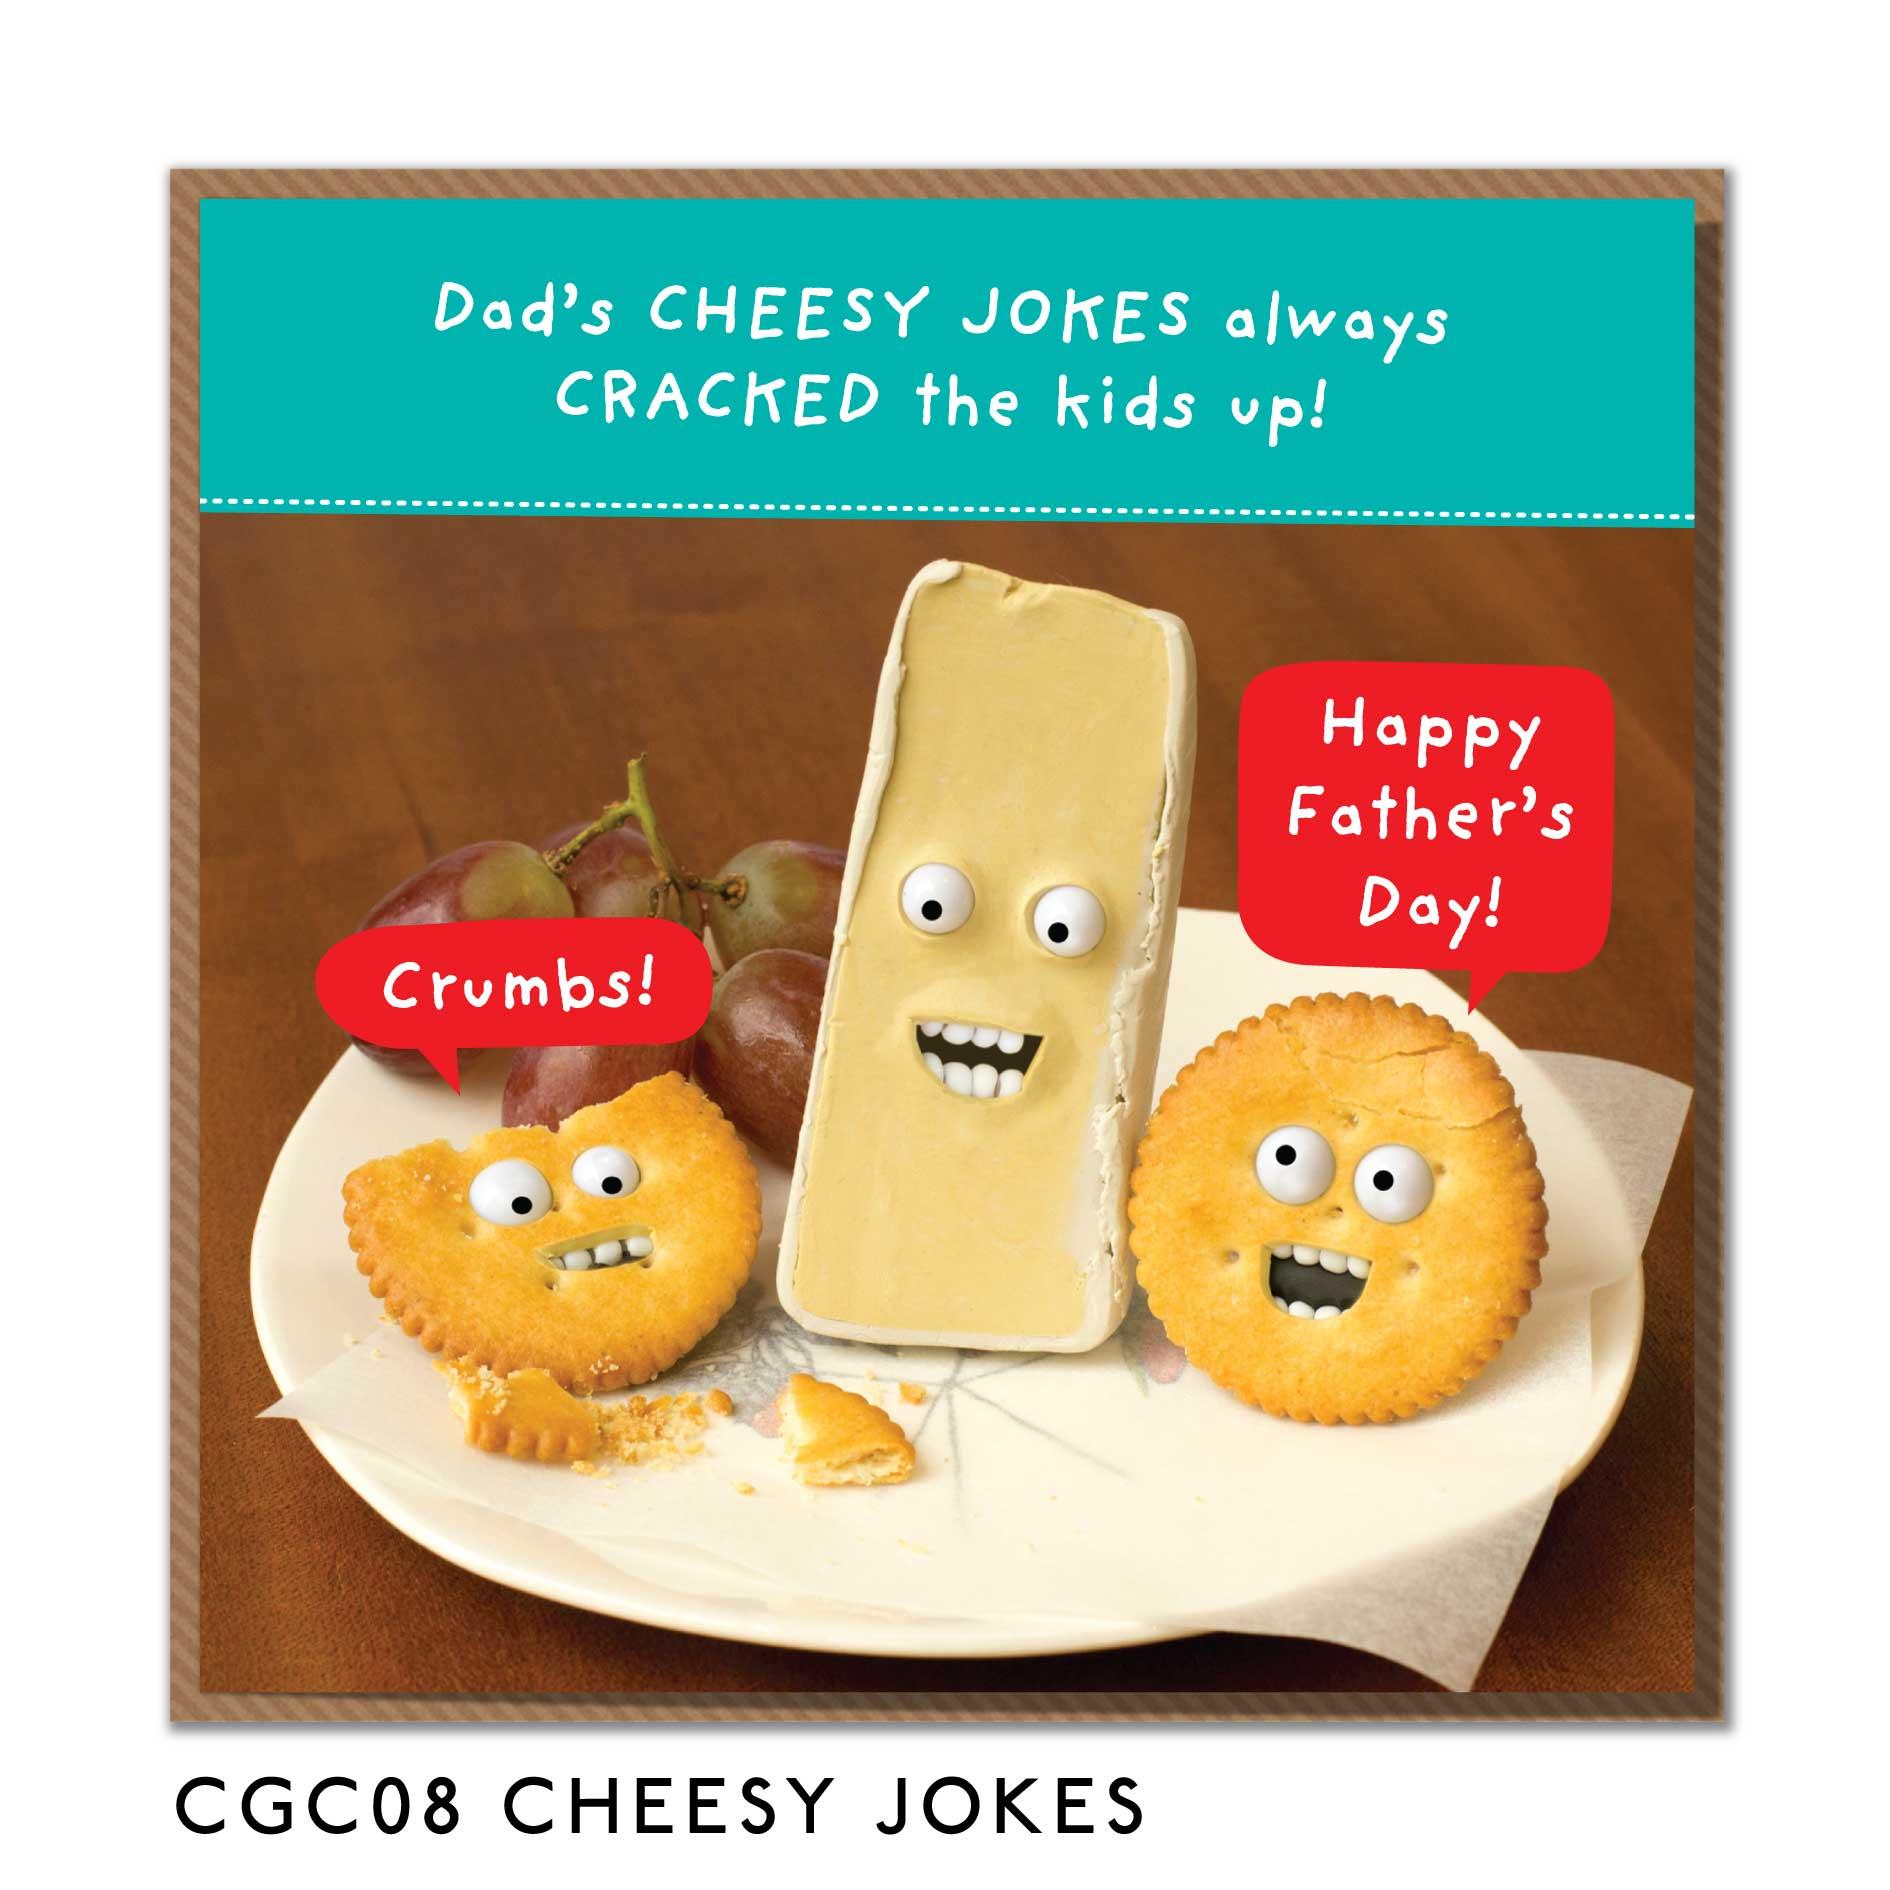 CGC08-CHEESY-JOKES.jpg